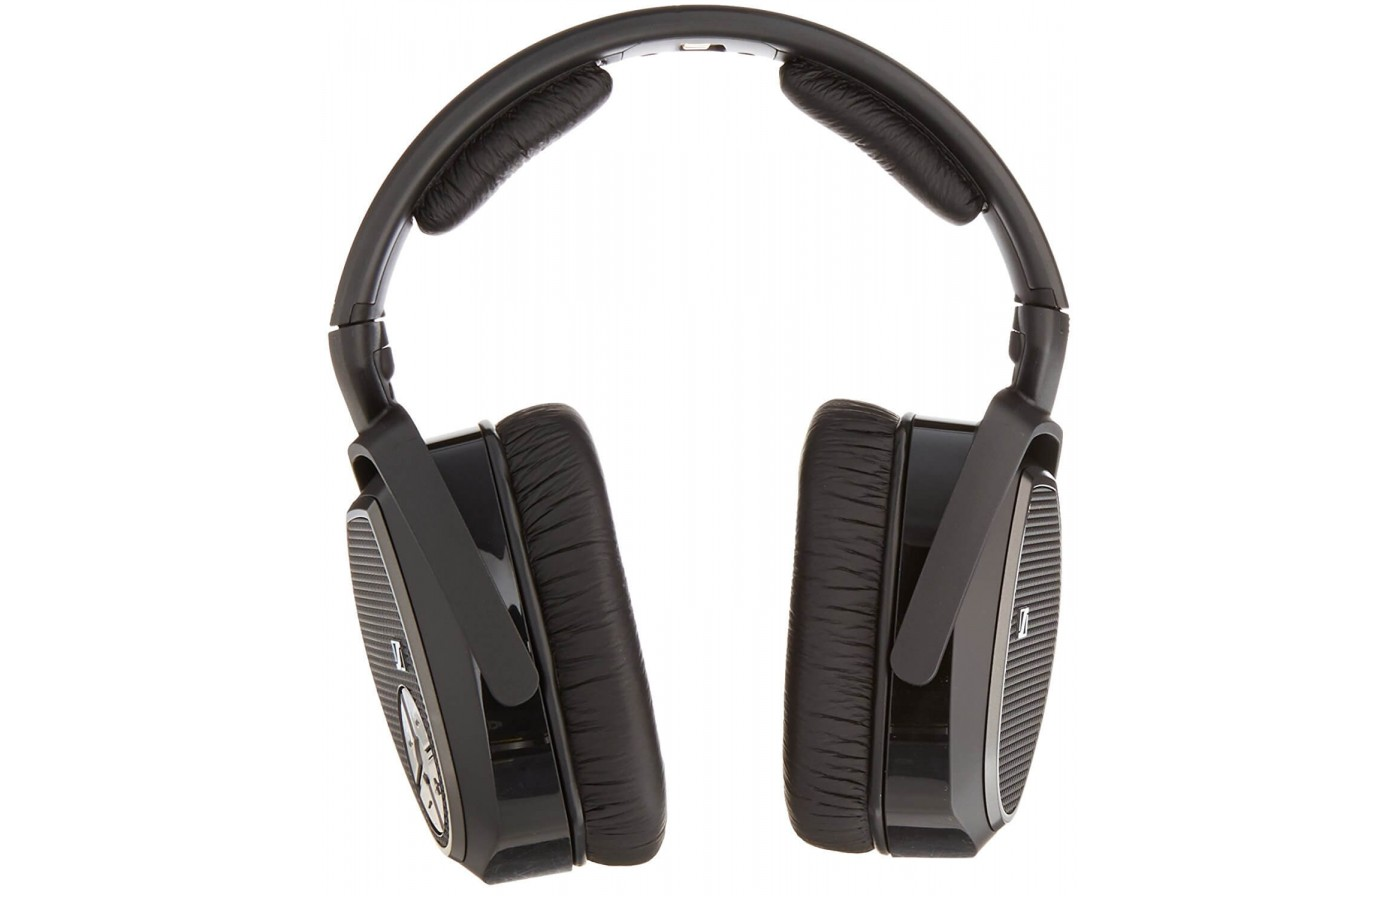 The Senheiser RS 175 headphones feature padded ear pieces and headband